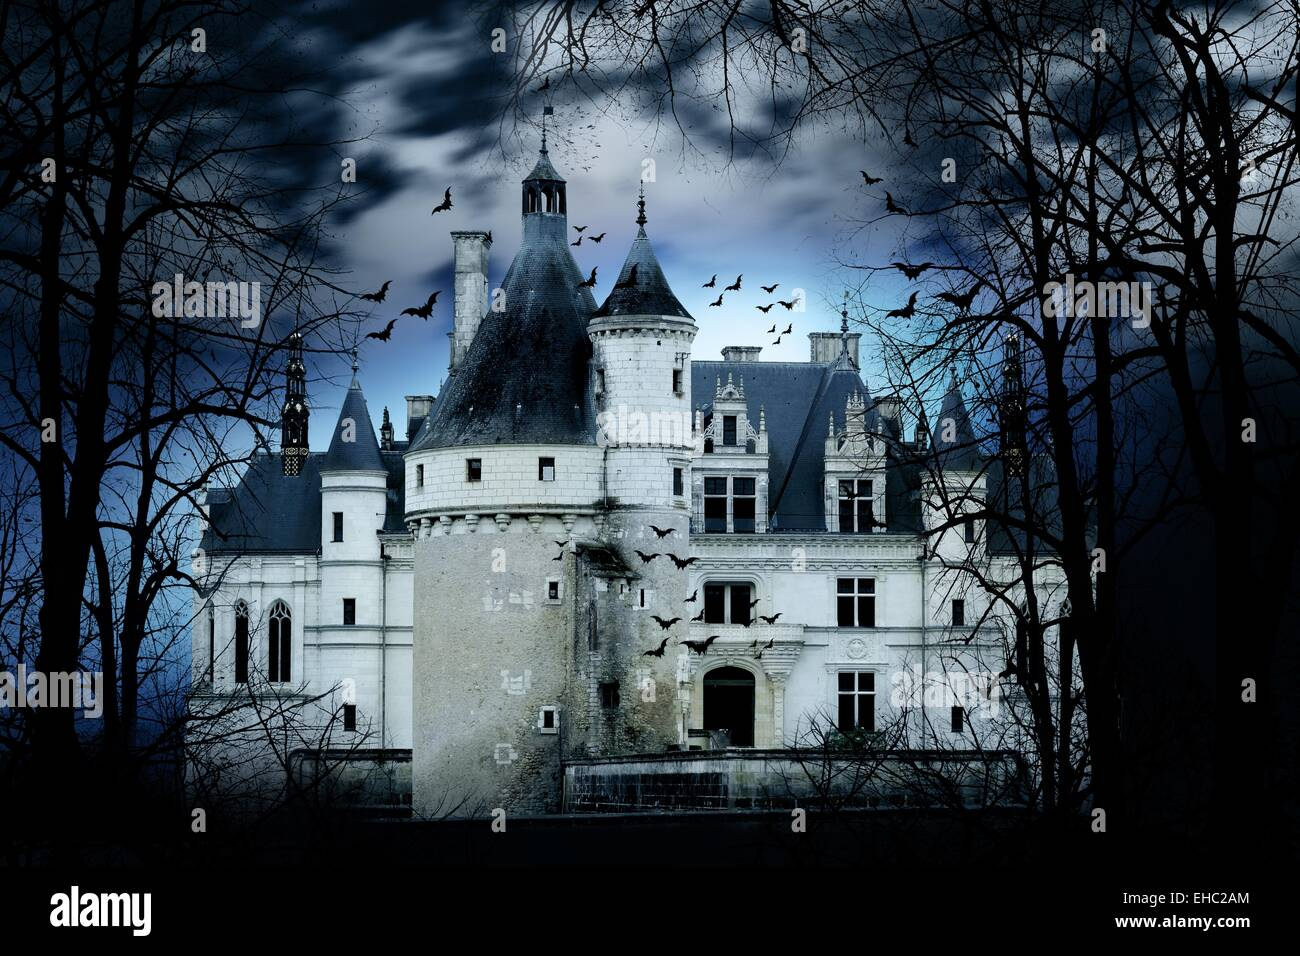 Haunted castle with dark scary horror atmosphere - Stock Image